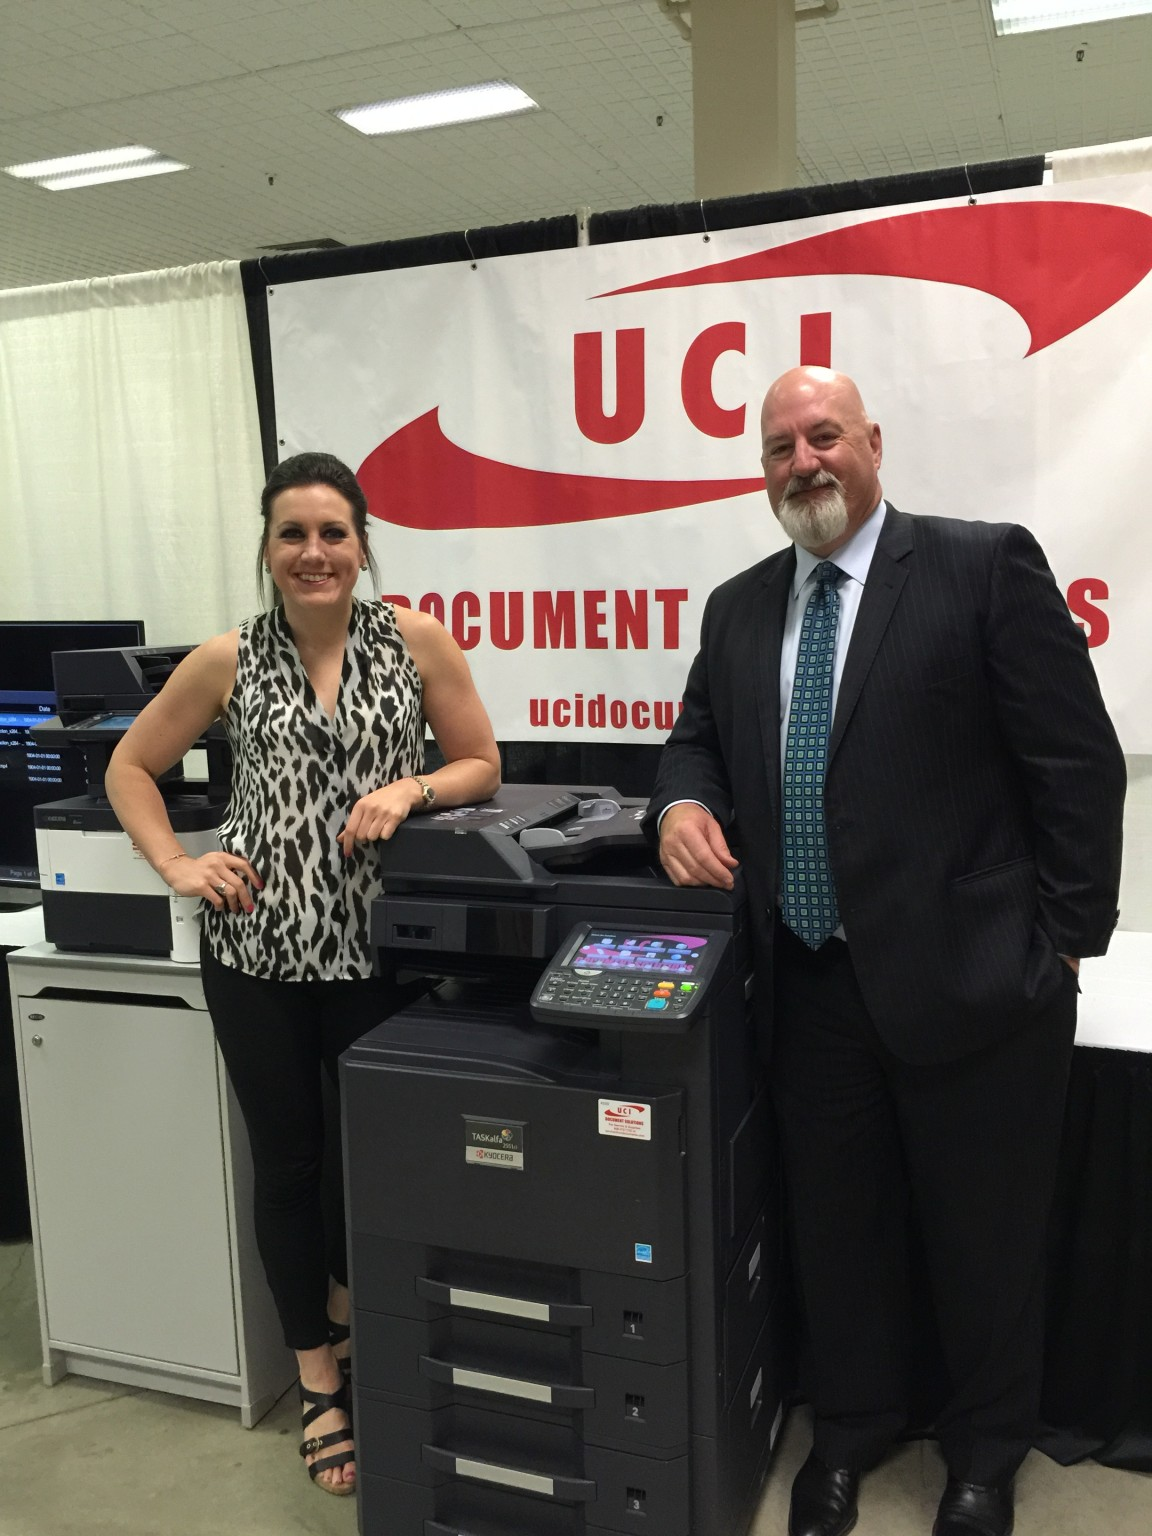 Savannah and Don Carver, UCI Document Solutions, Amarillo, Texas